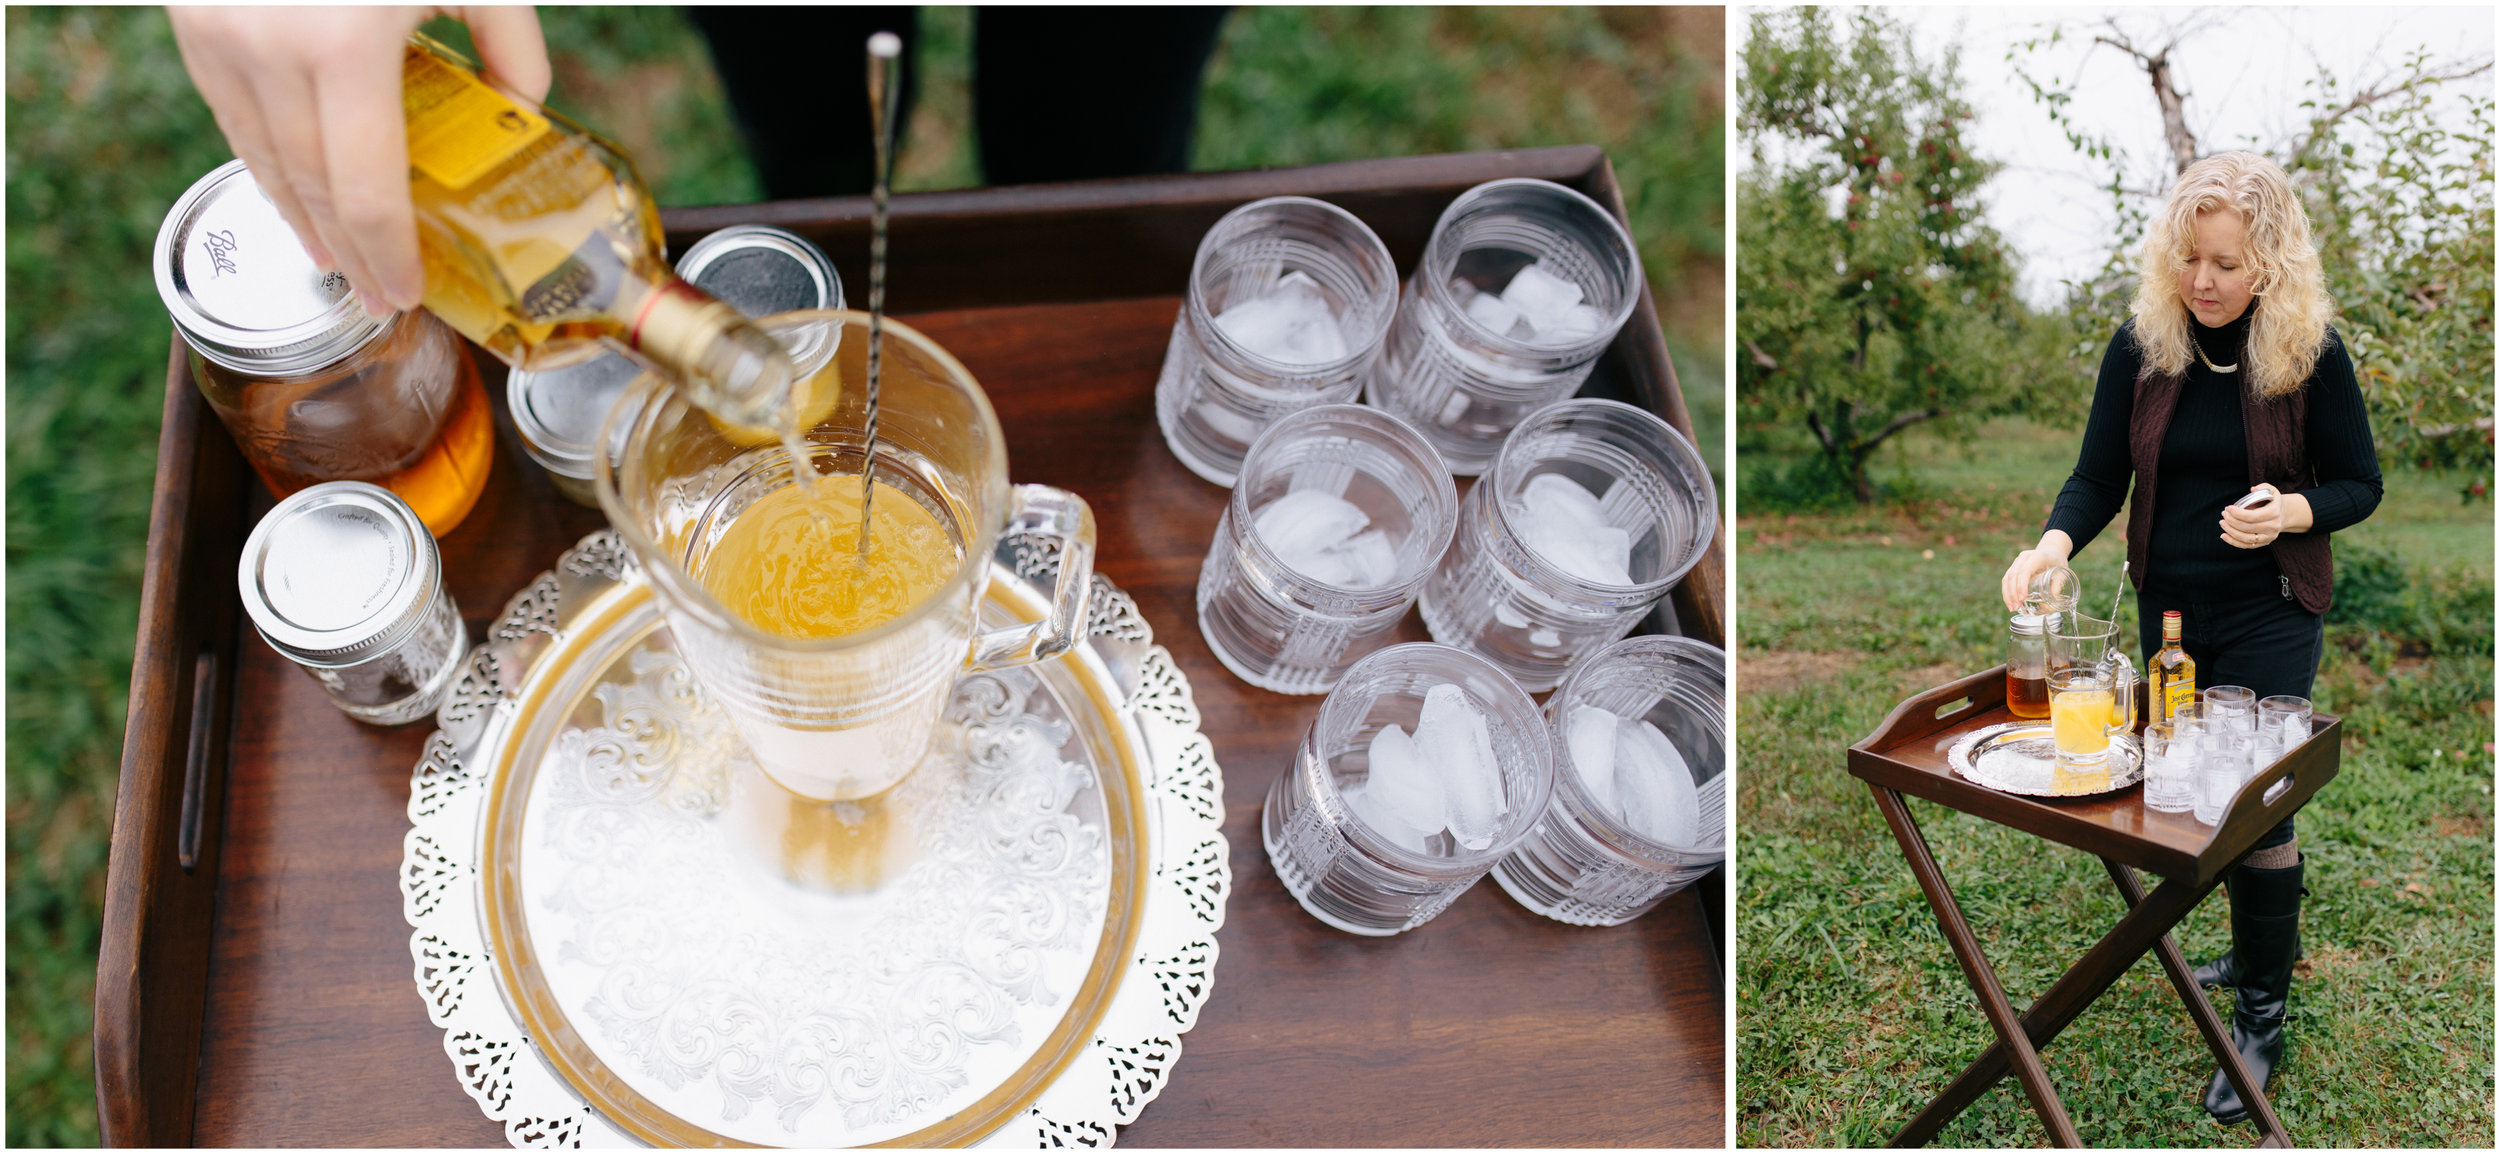 Debbie Harpe uses Jose Cuervo tequila to make delicious mixed drinks (cocktails) for her orchard Sunday picnic